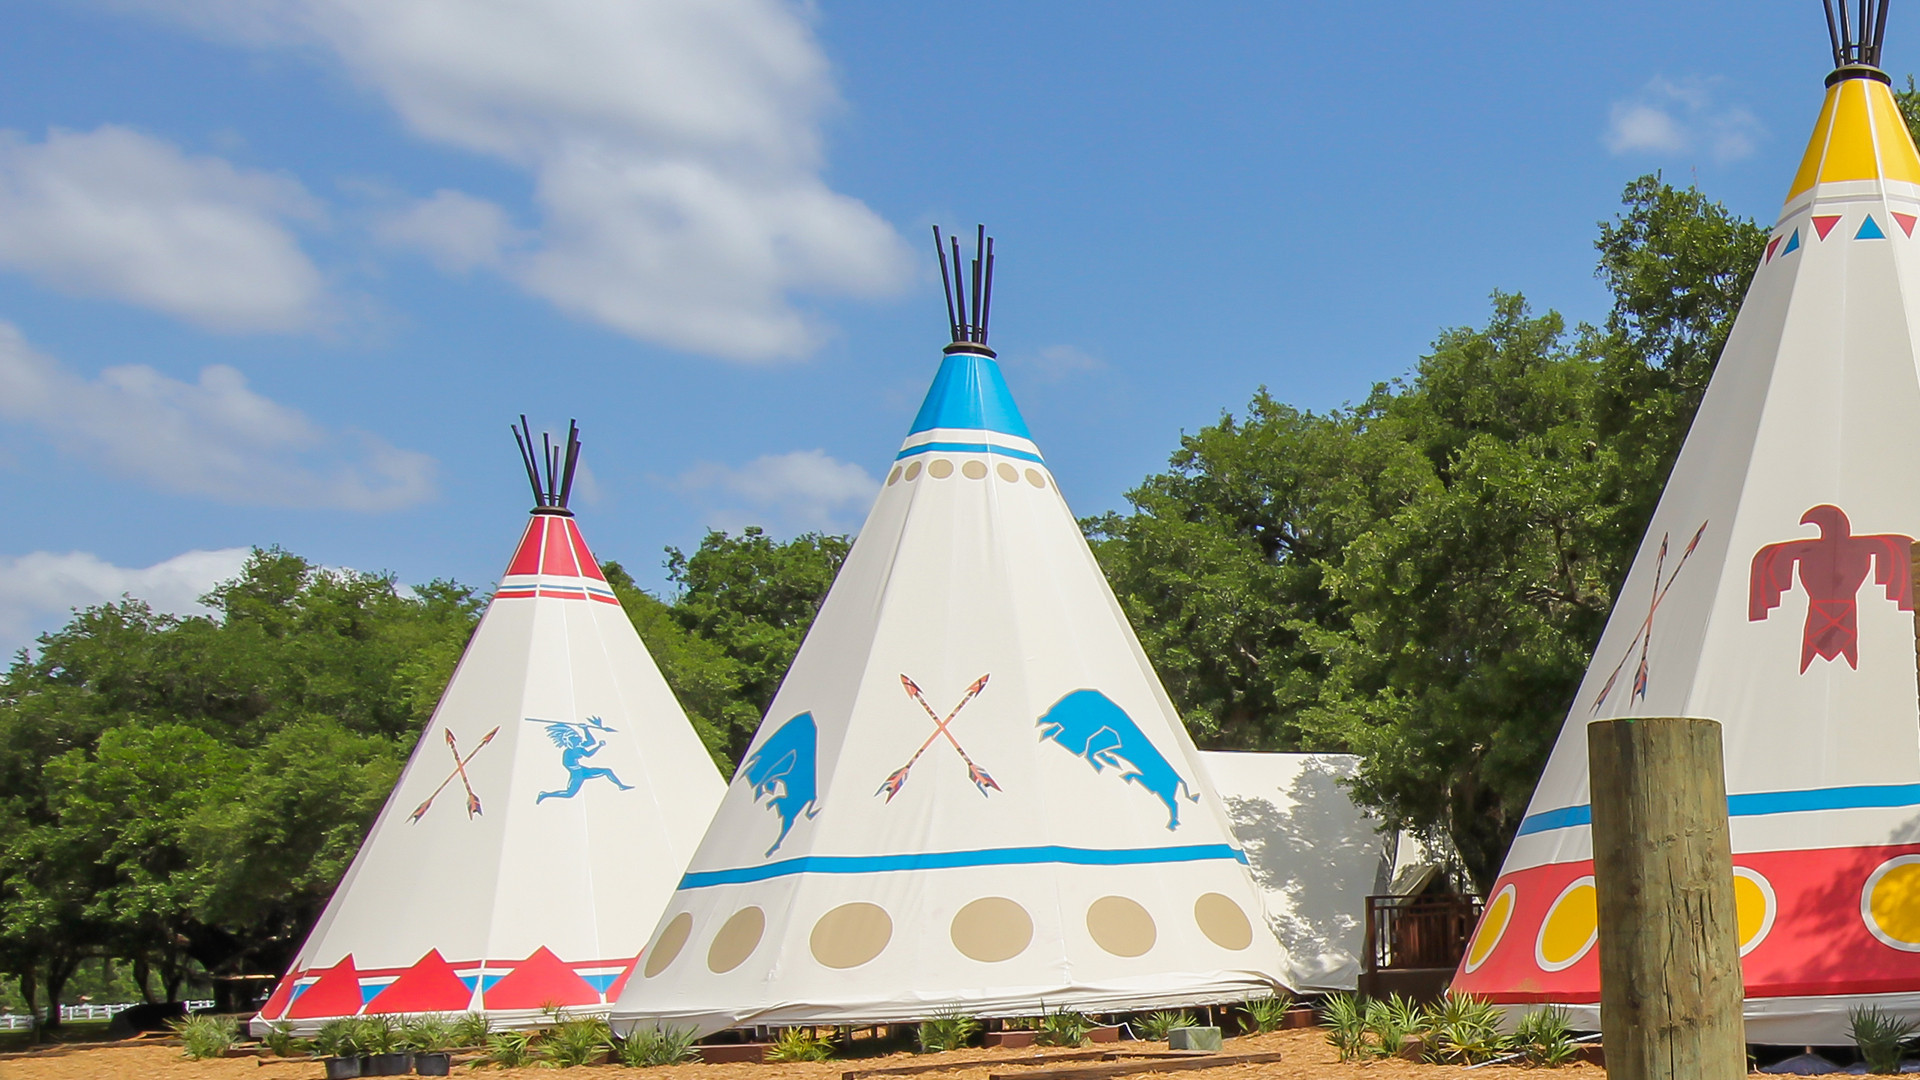 Teepee Resort Camping at Westgate River Ranch Resort & Rodeo | Tipi Camping | Westgate Resorts